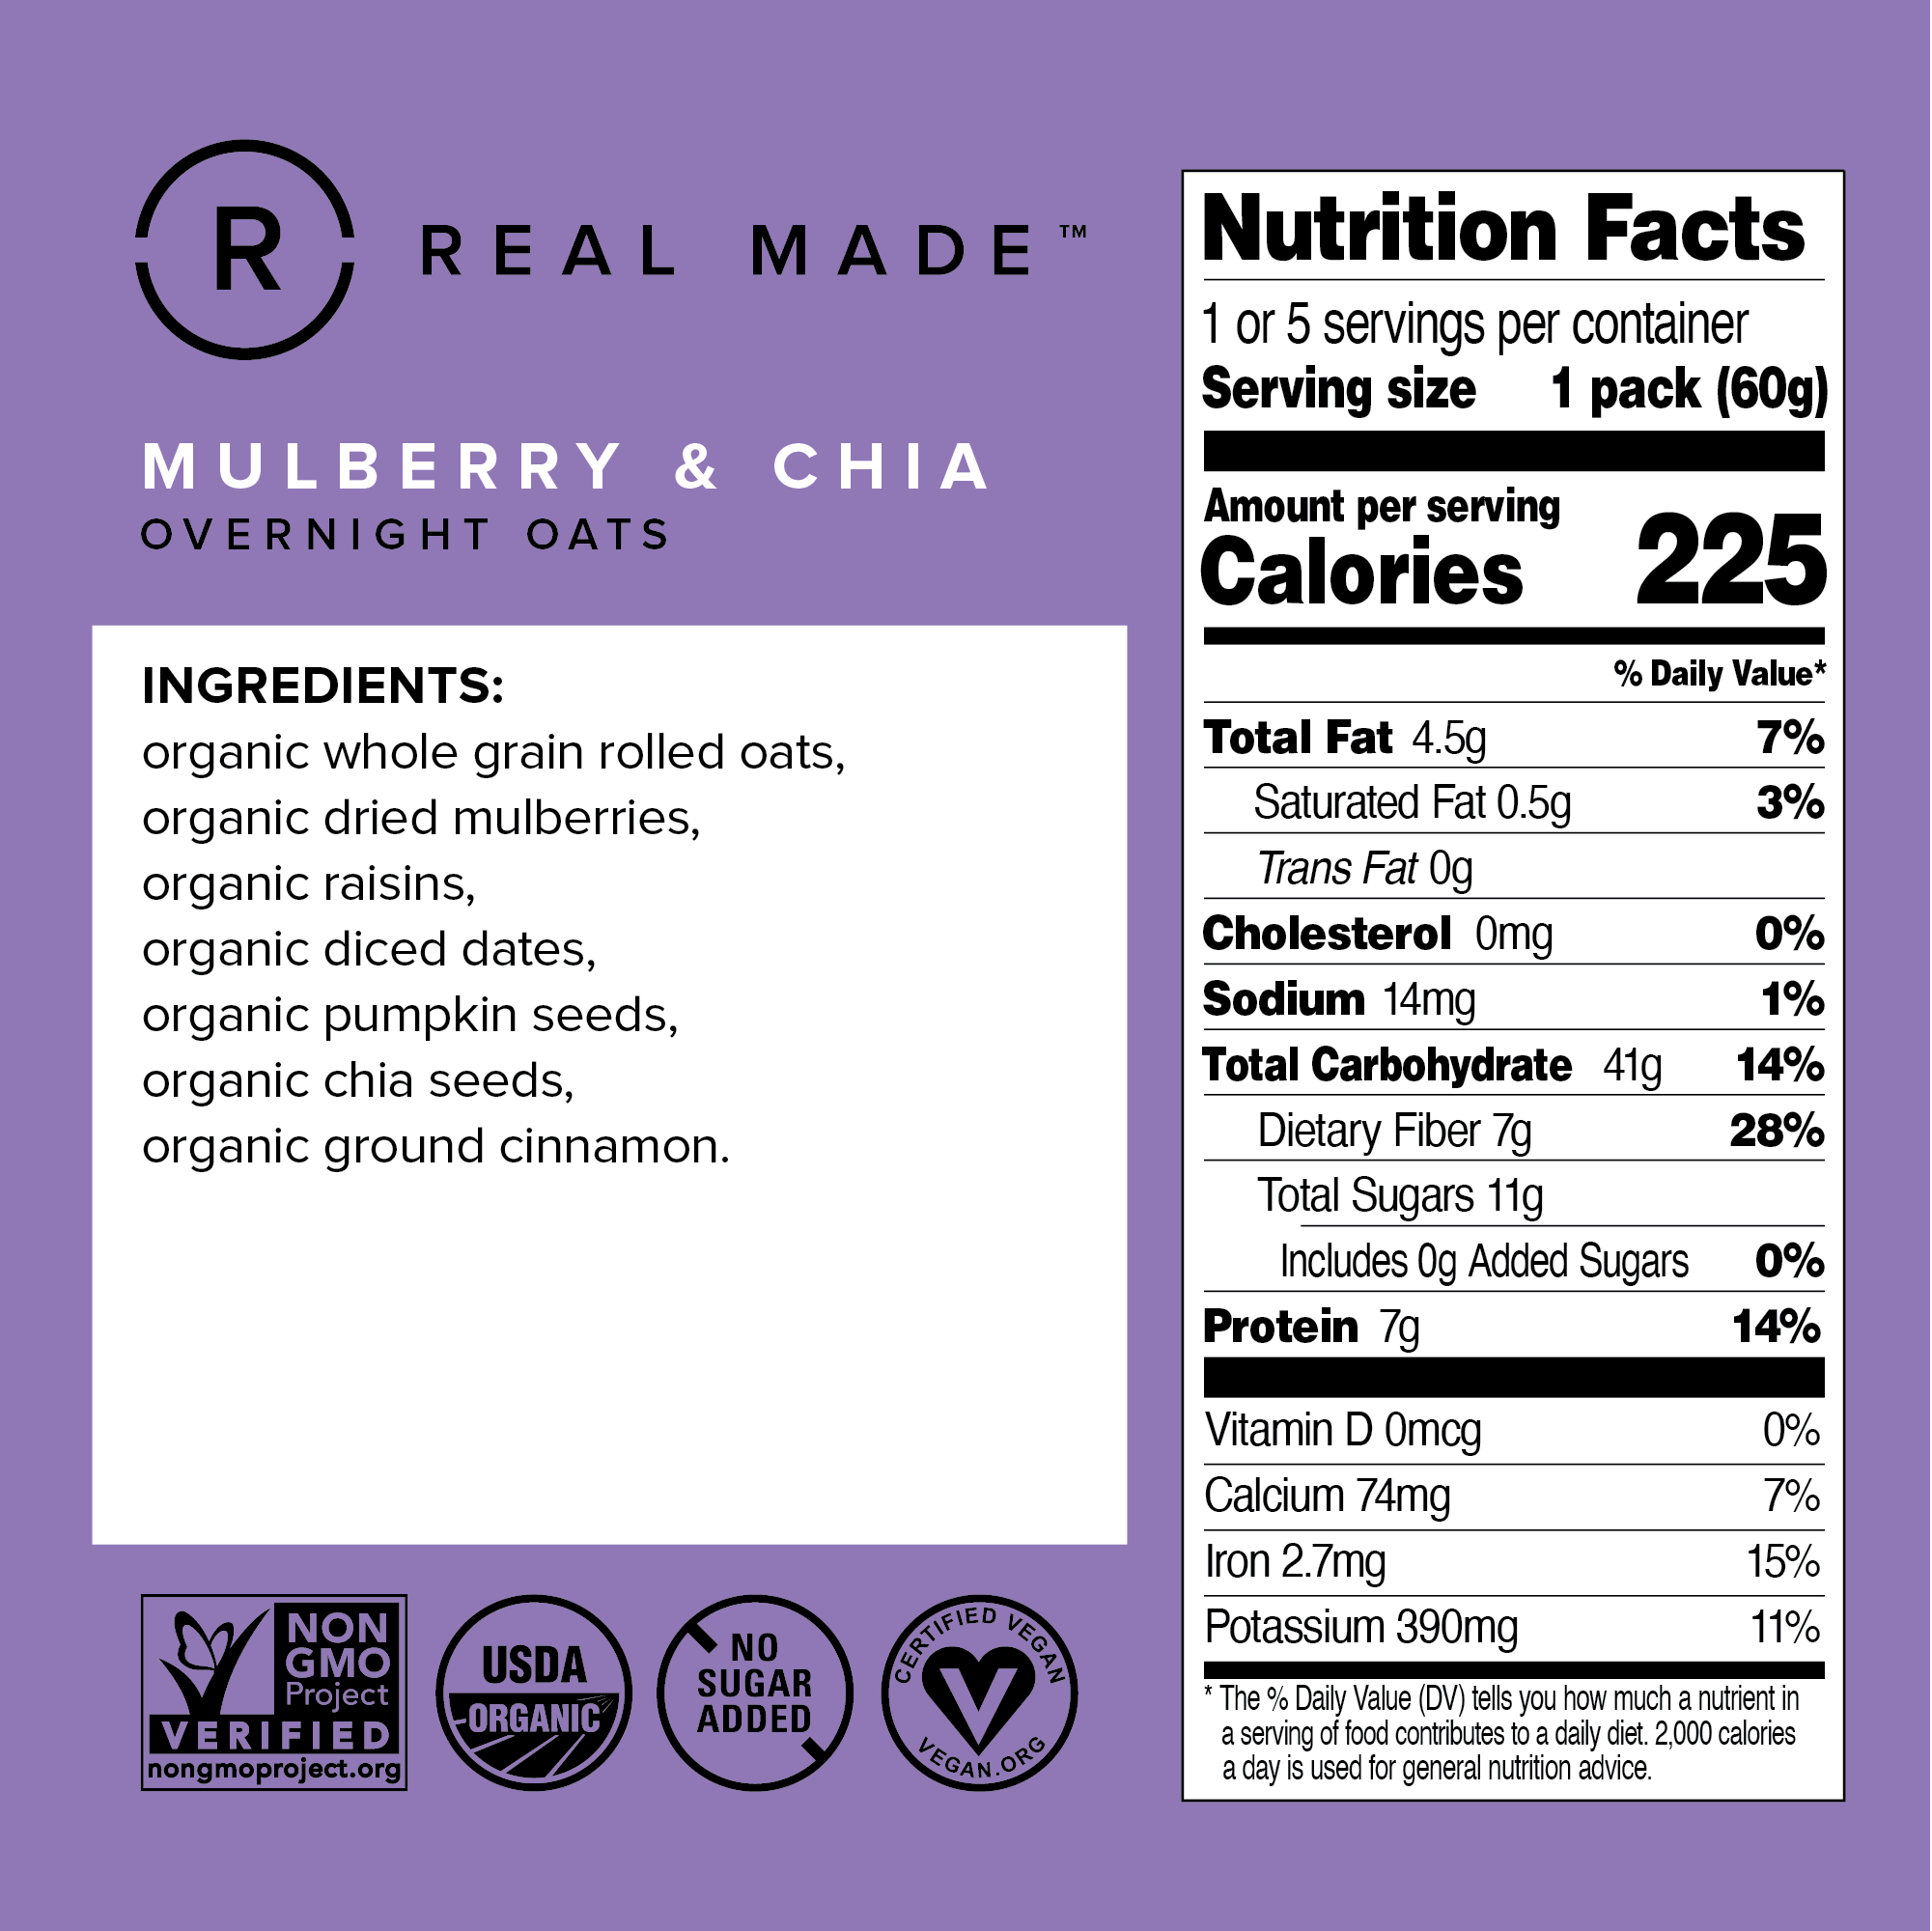 Mulberry & Chia Nutritional Information